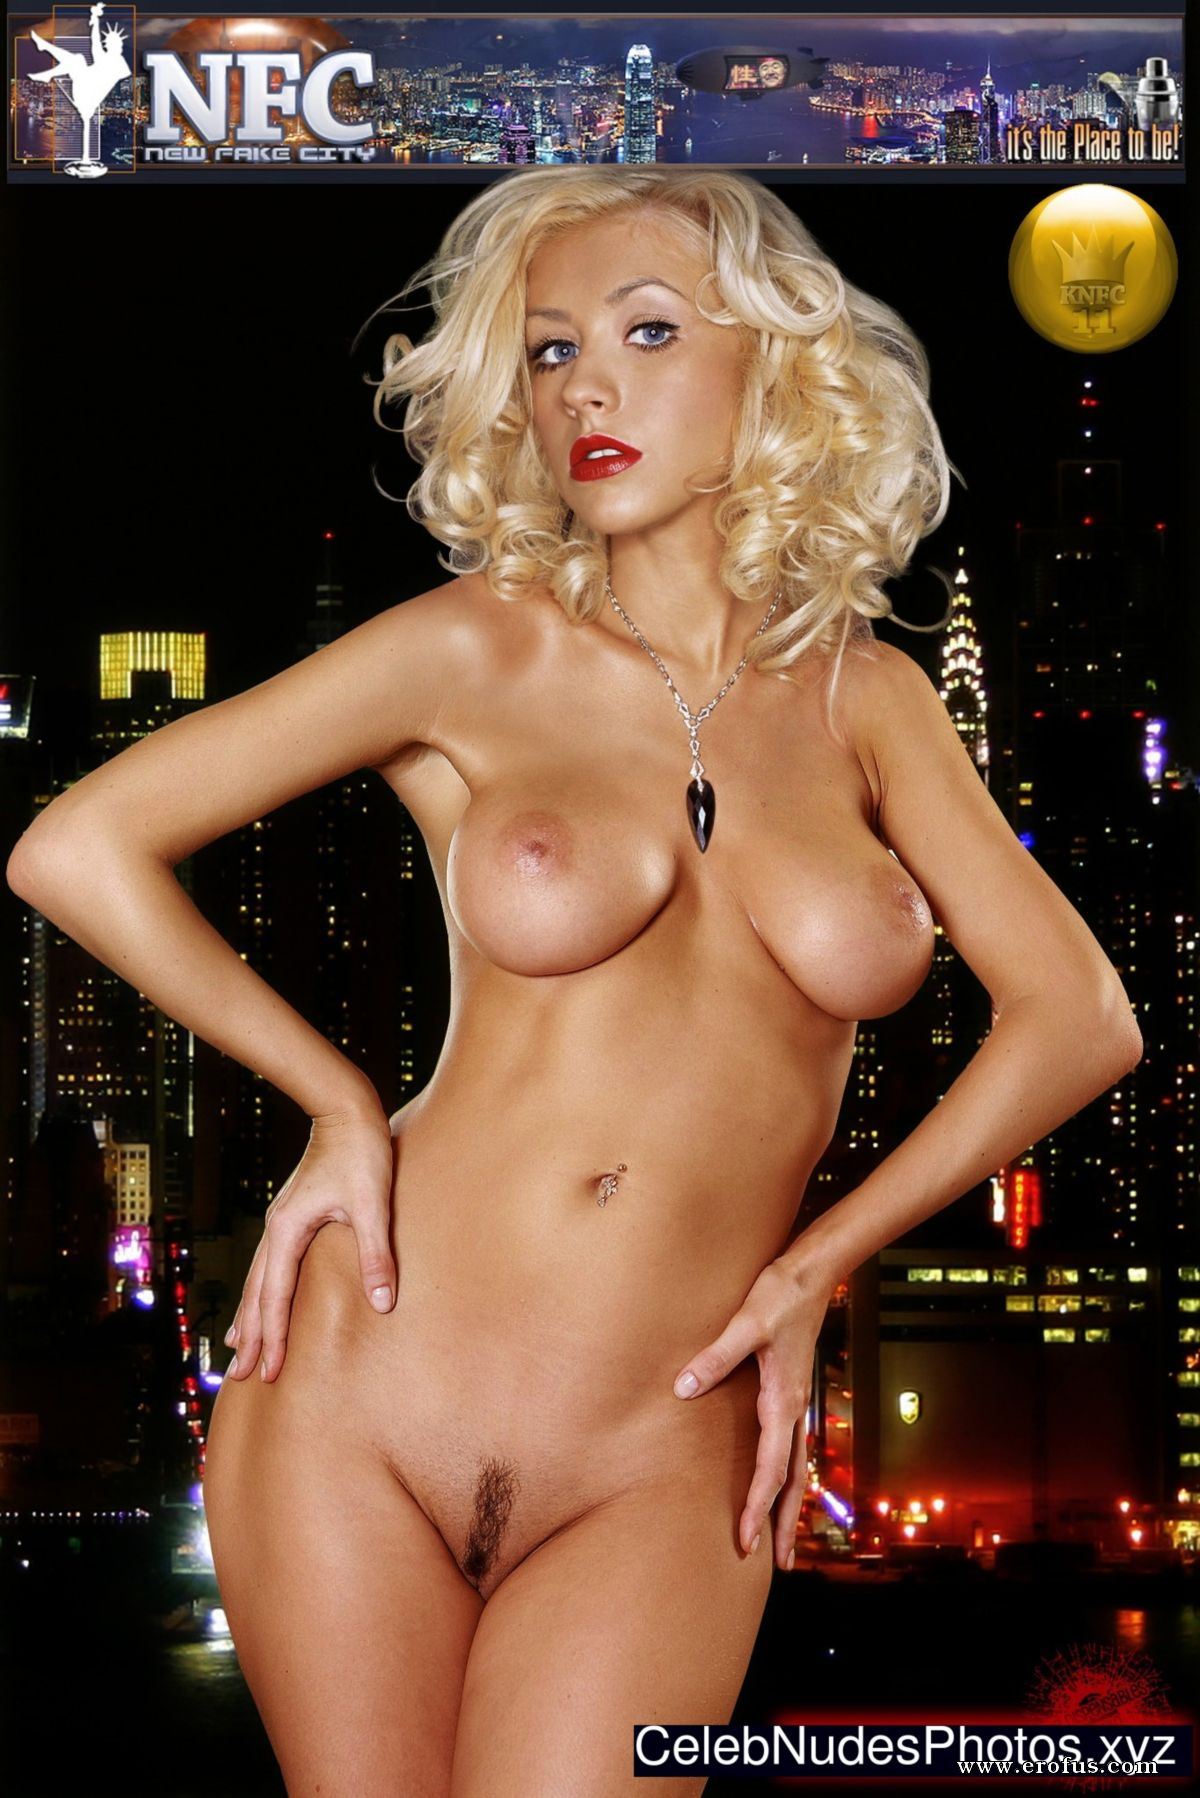 Hot porn christina aguilera photo, sex butt plugs